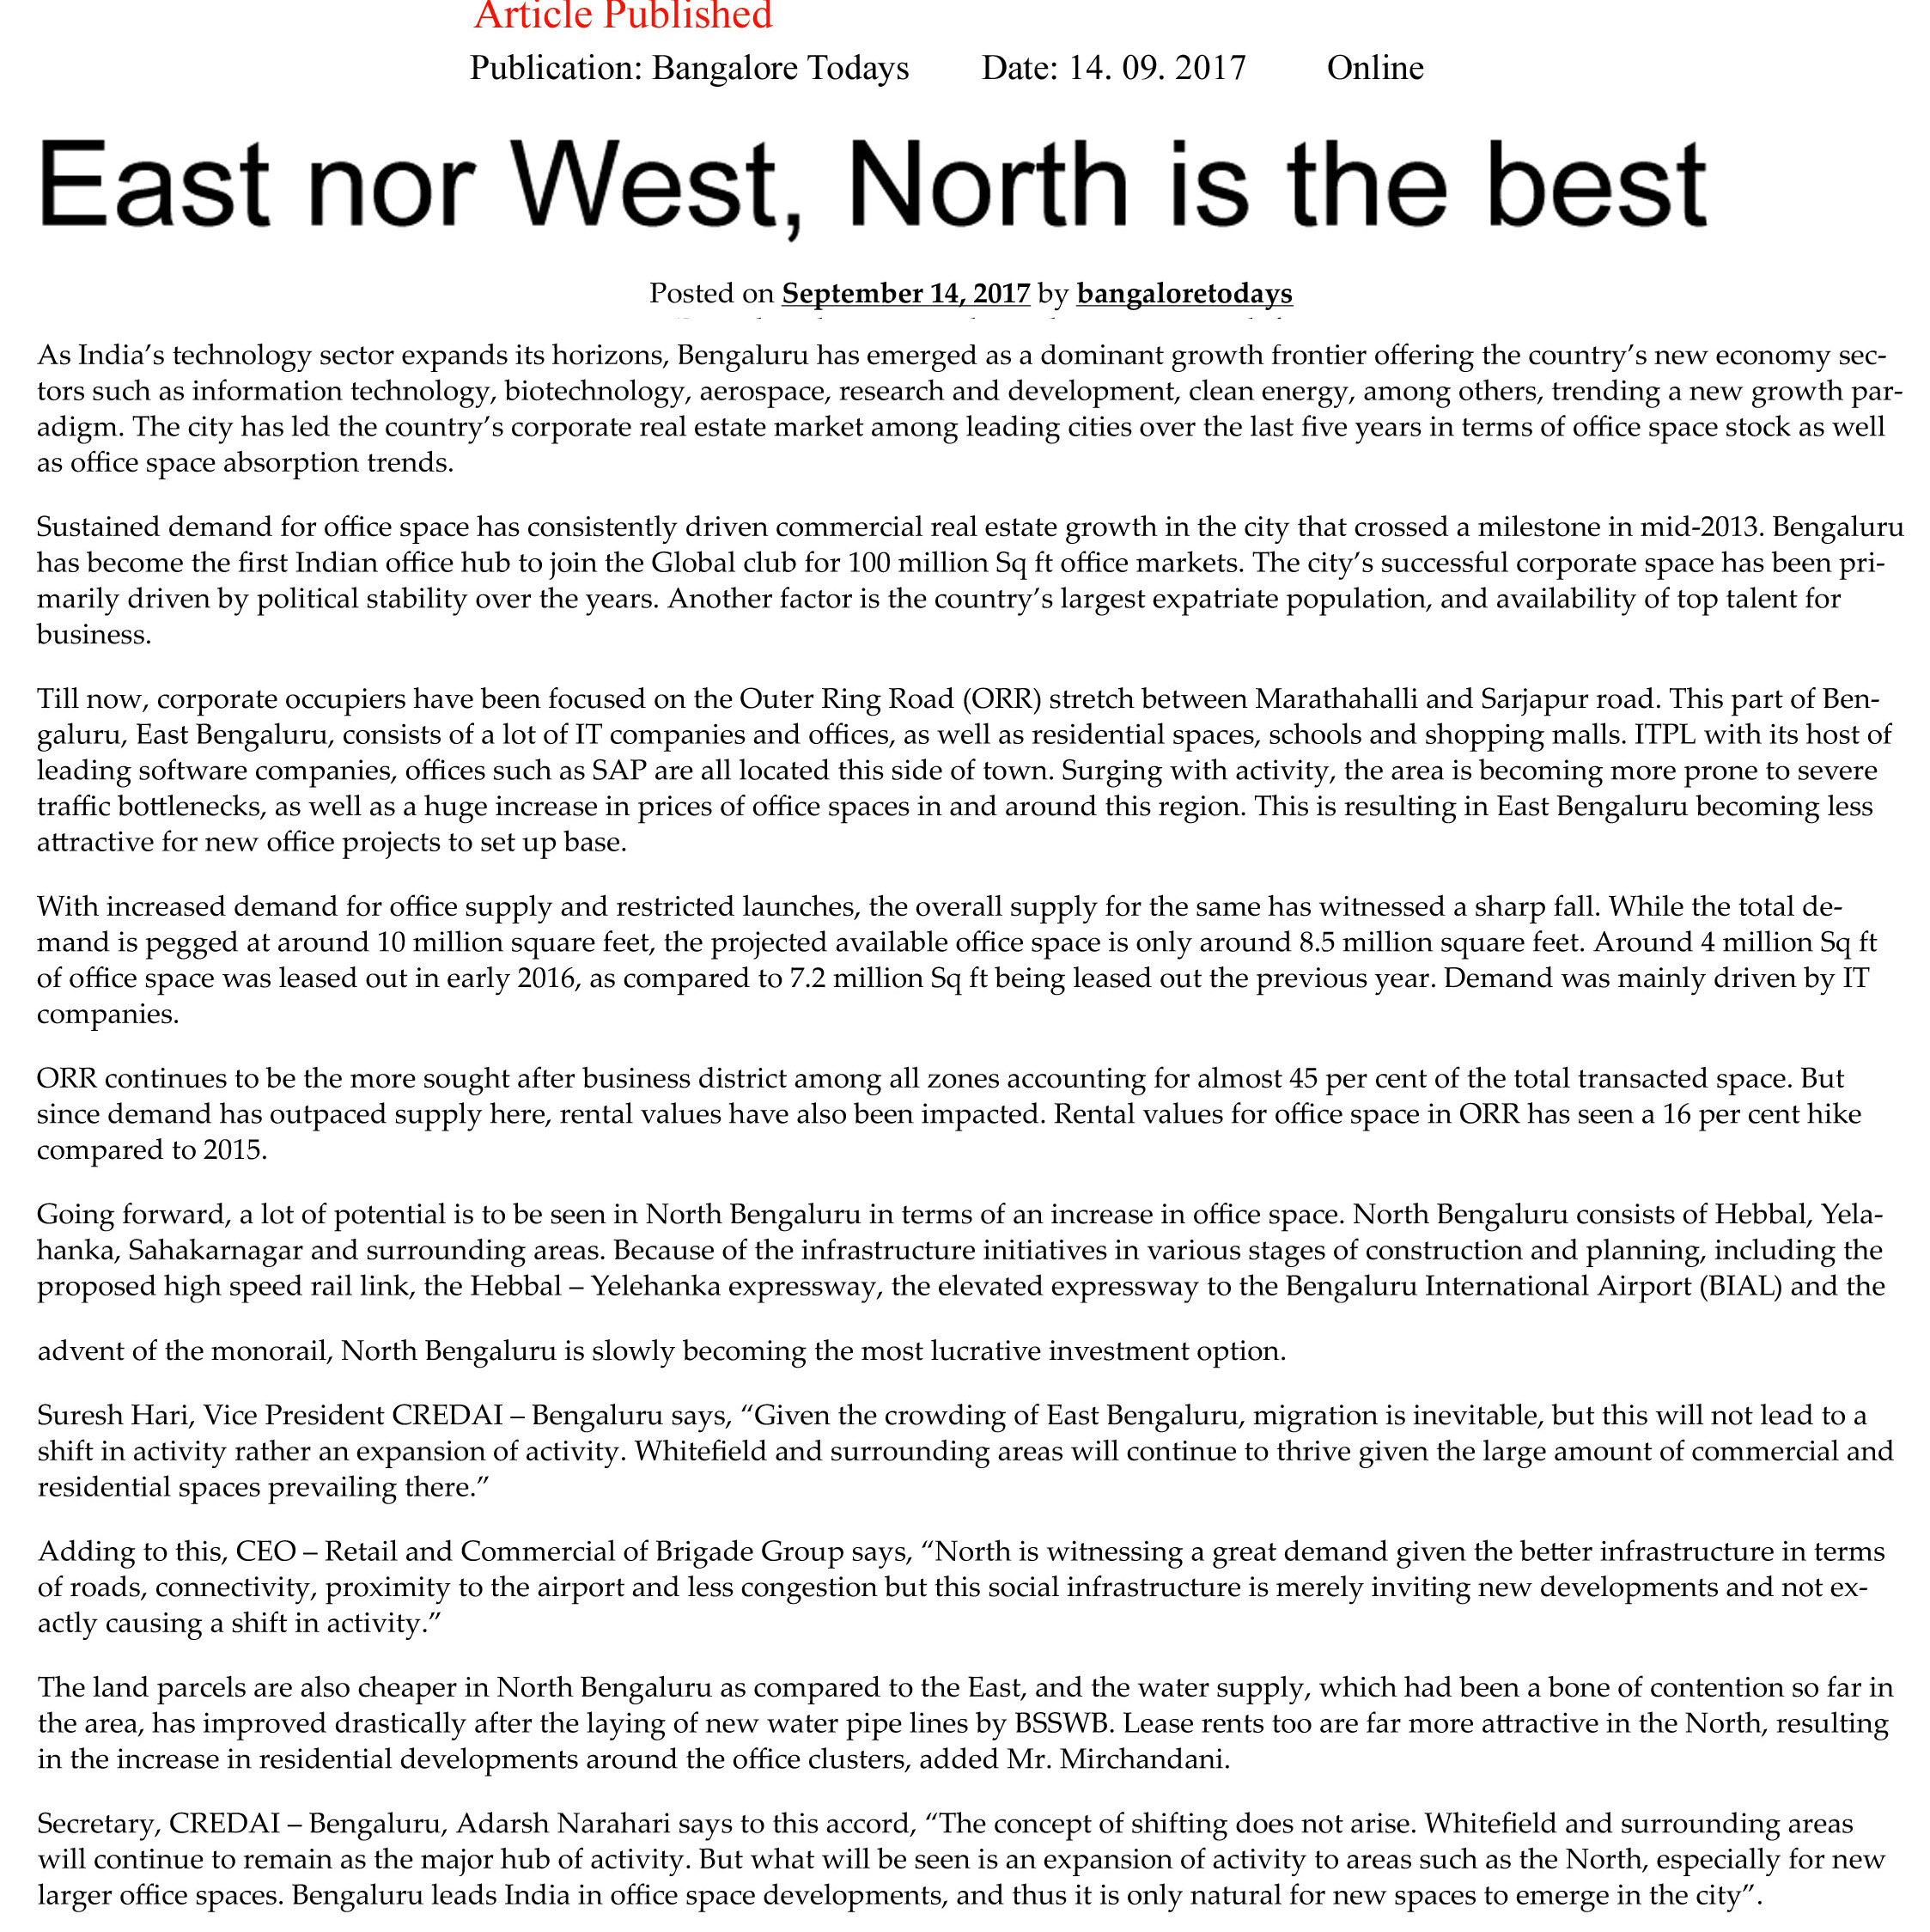 East nor West, North is the best—Bangalore Todays–Online